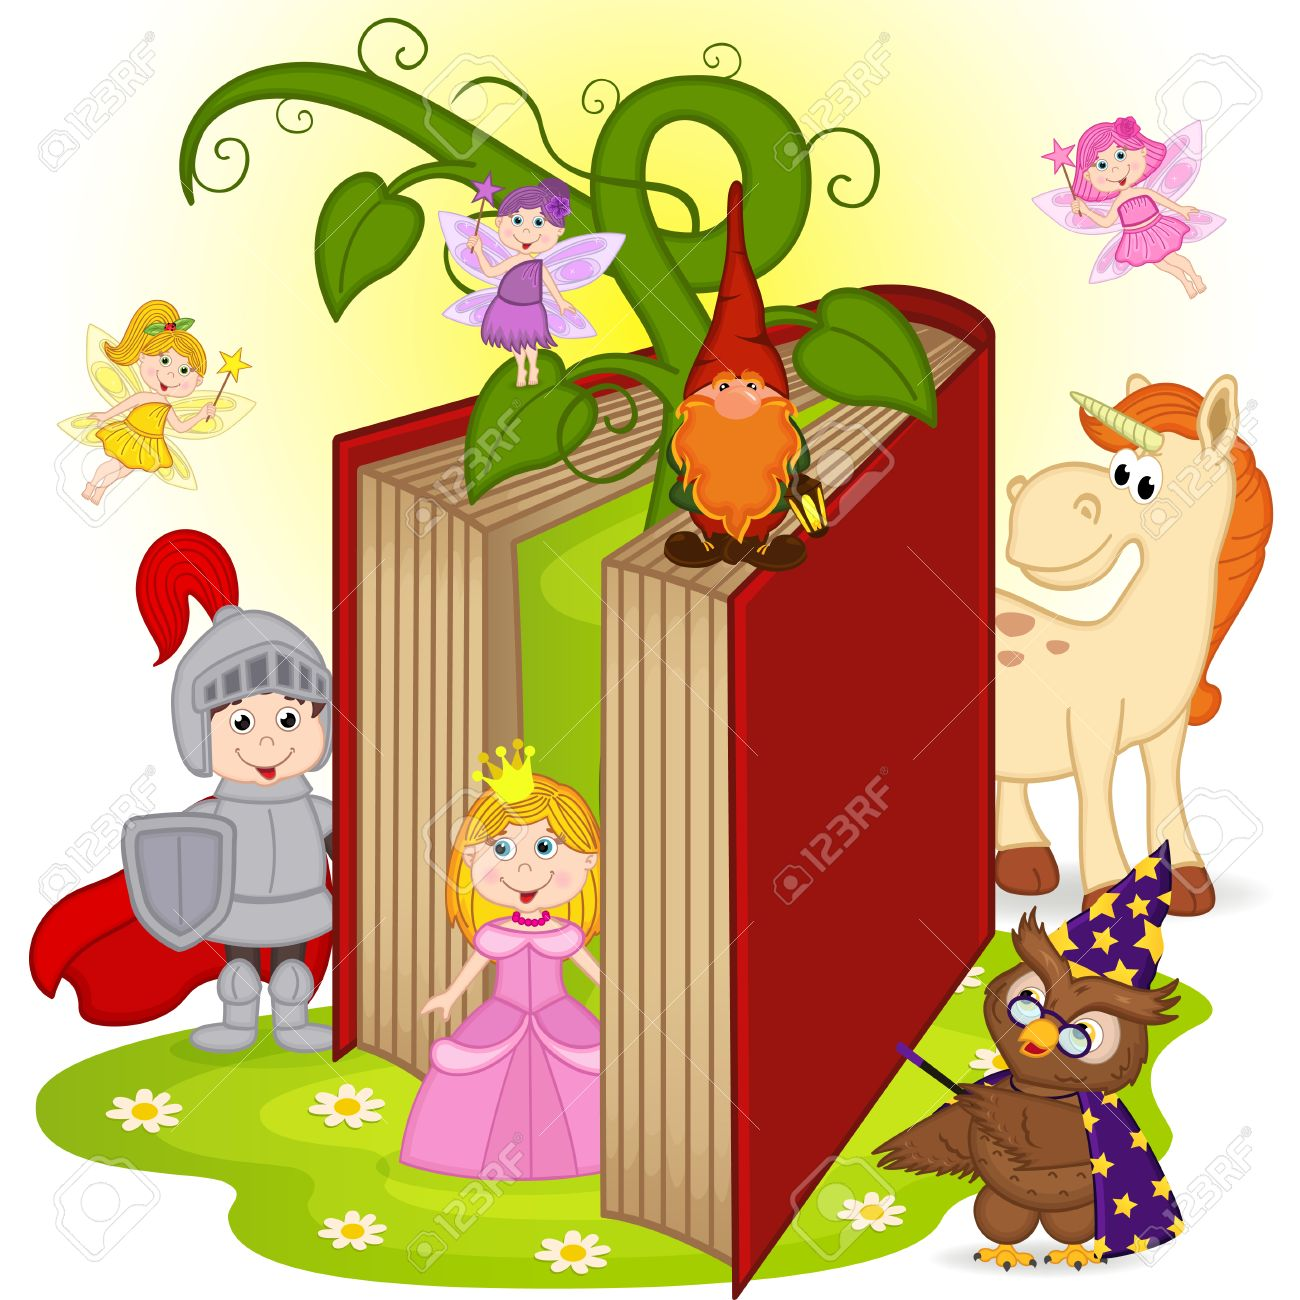 hight resolution of book with characters from fairy tales stock vector 58942512